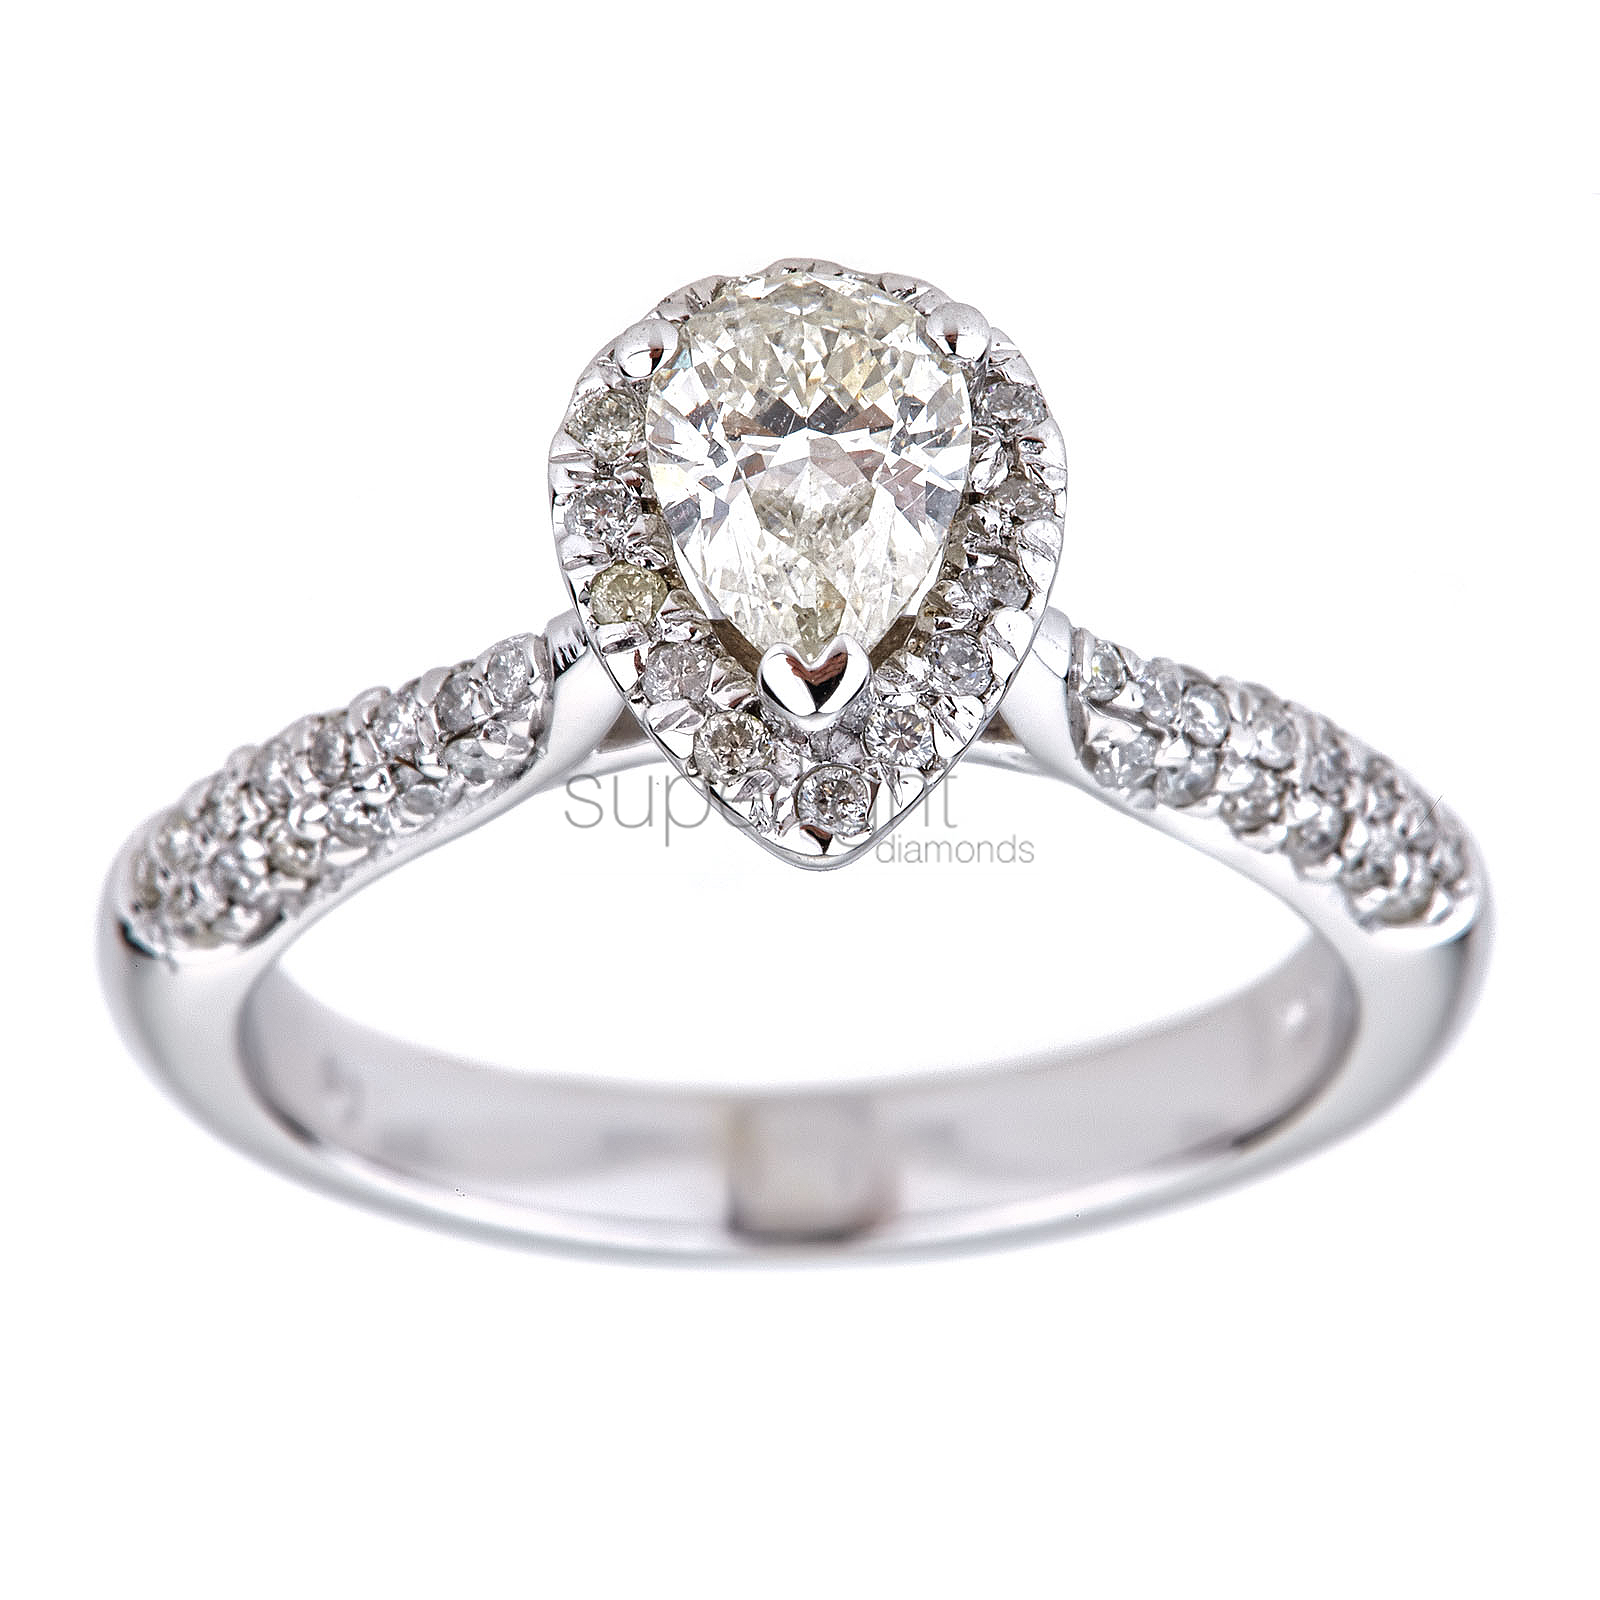 Certified 0.75 Ct I Color SI1 Pear Halo Design Diamond Ring 14K W Gold *360 VIDEO & PROFESSIONAL IMAGES INSIDE